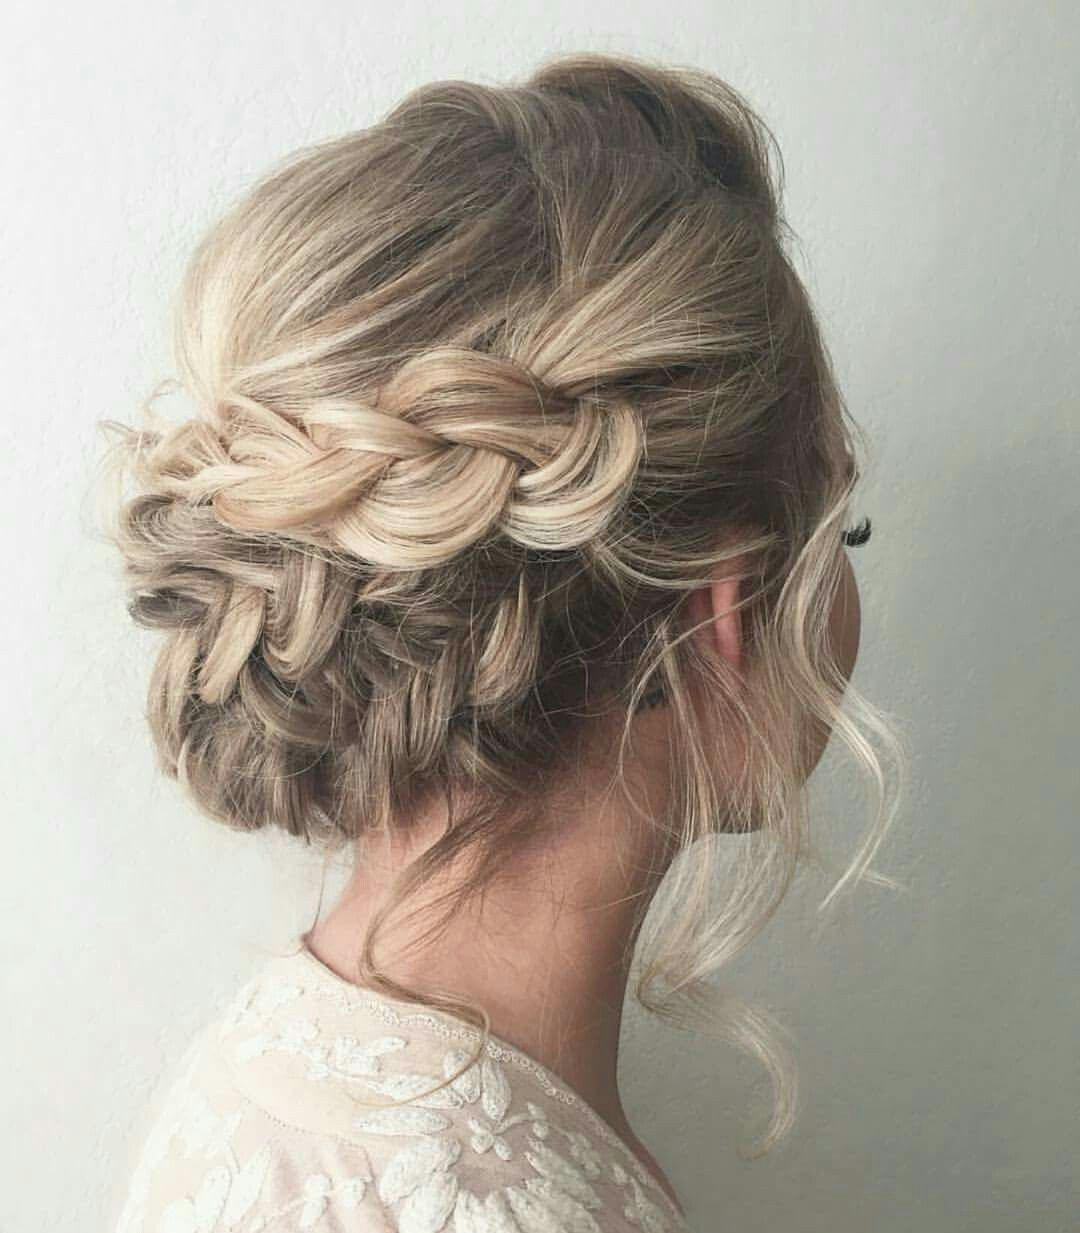 Party Hairstyles Endearing Pinagnieszka On Uroda  Pinterest  Prom Hair Style And Prom Hair